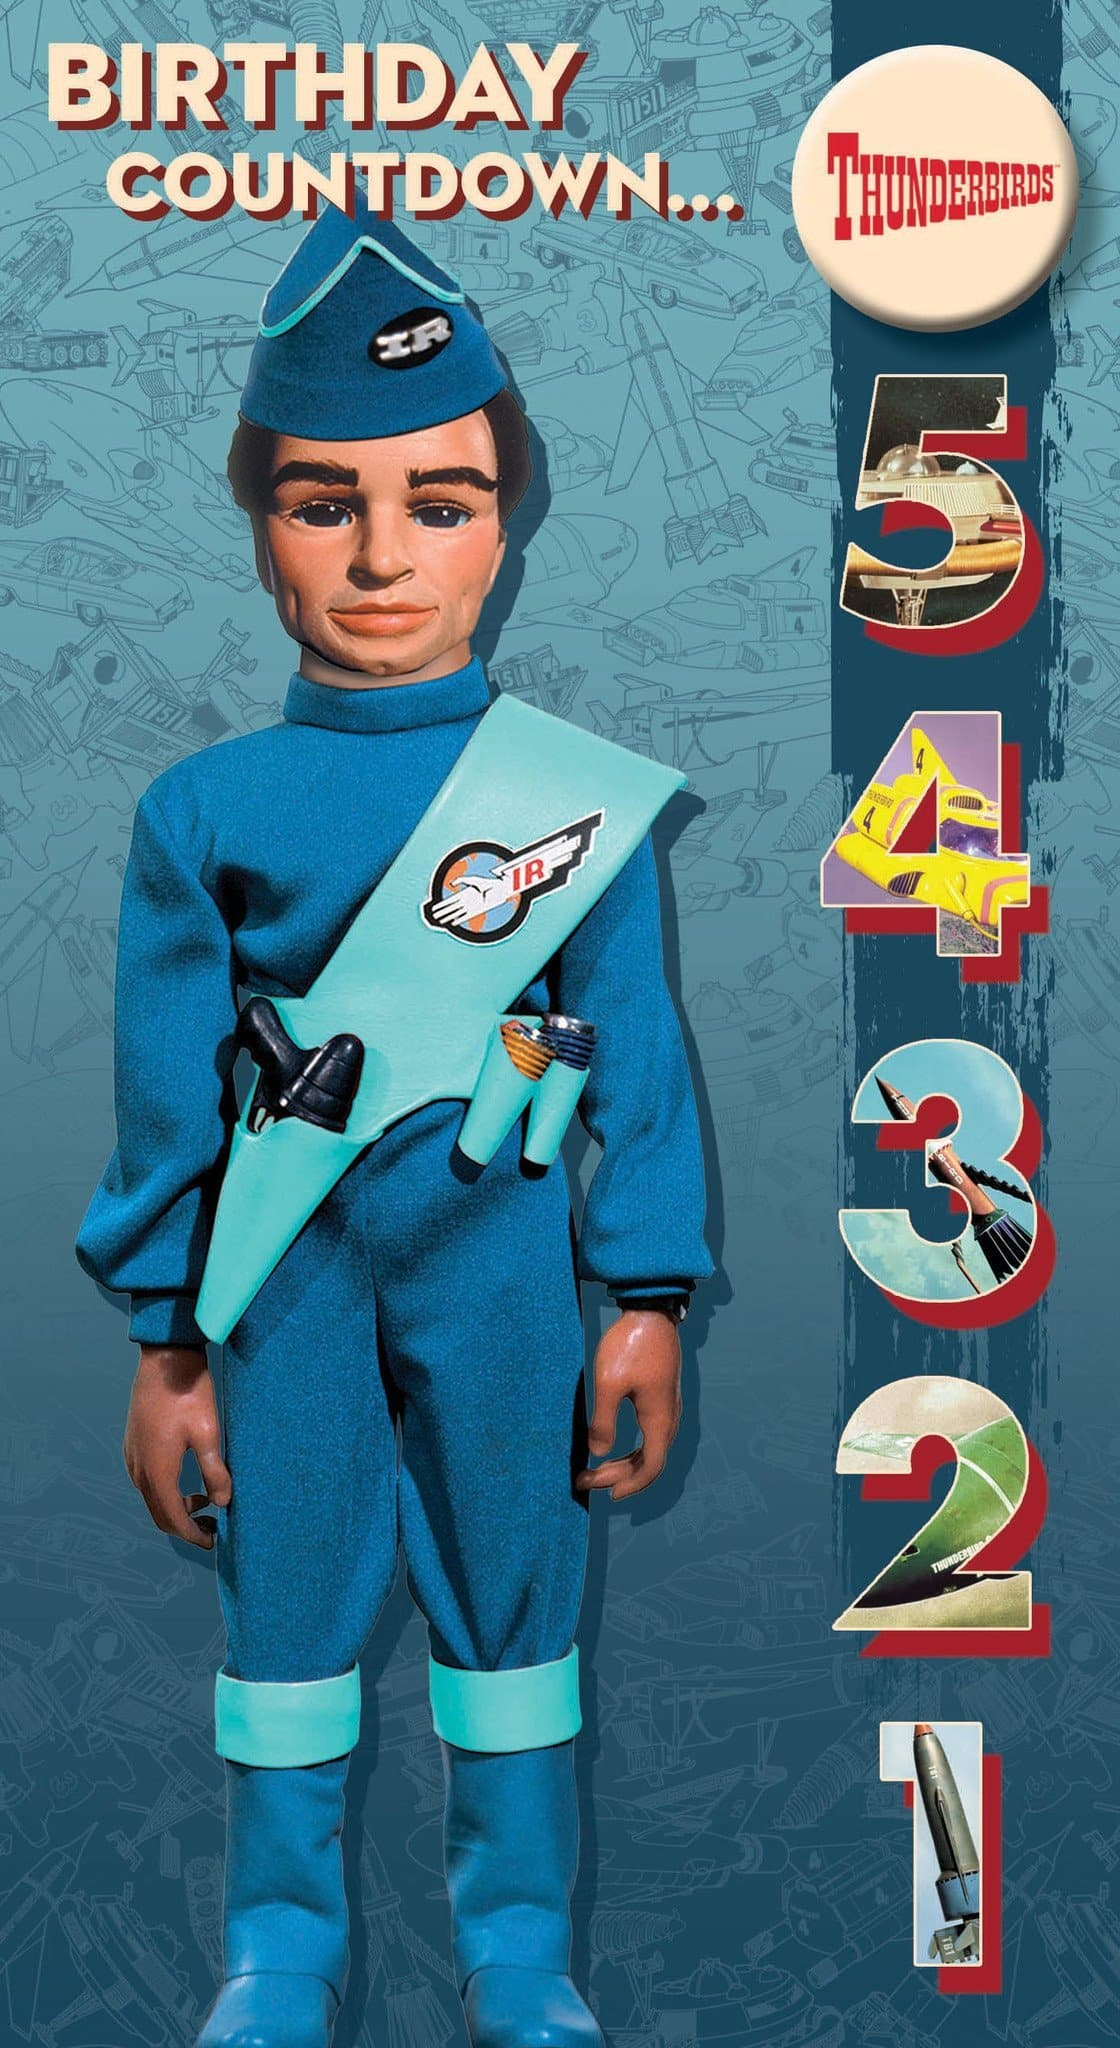 Official Thunderbirds Birthday Countdown Card with Badge - The Gerry Anderson Store